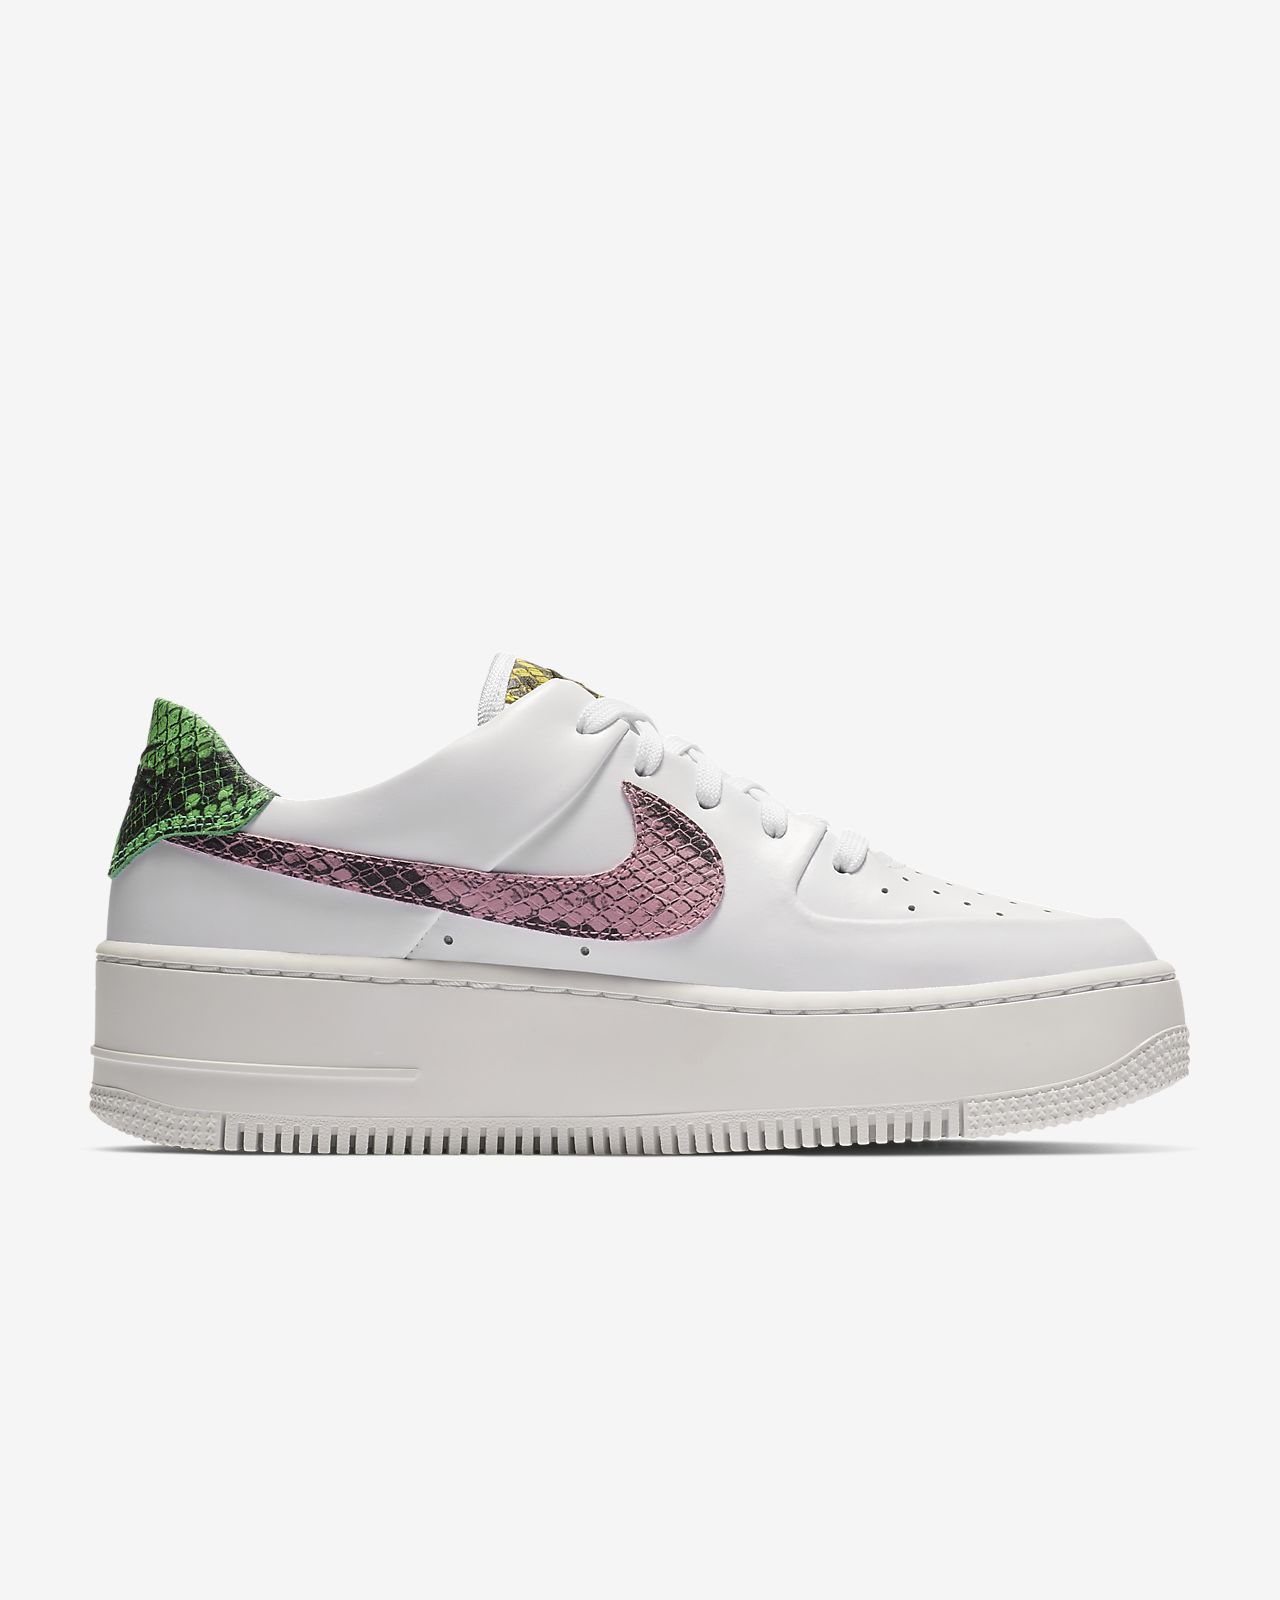 new product 9dd53 9f08a Nike Air Force 1 Sage Low Premium Animal